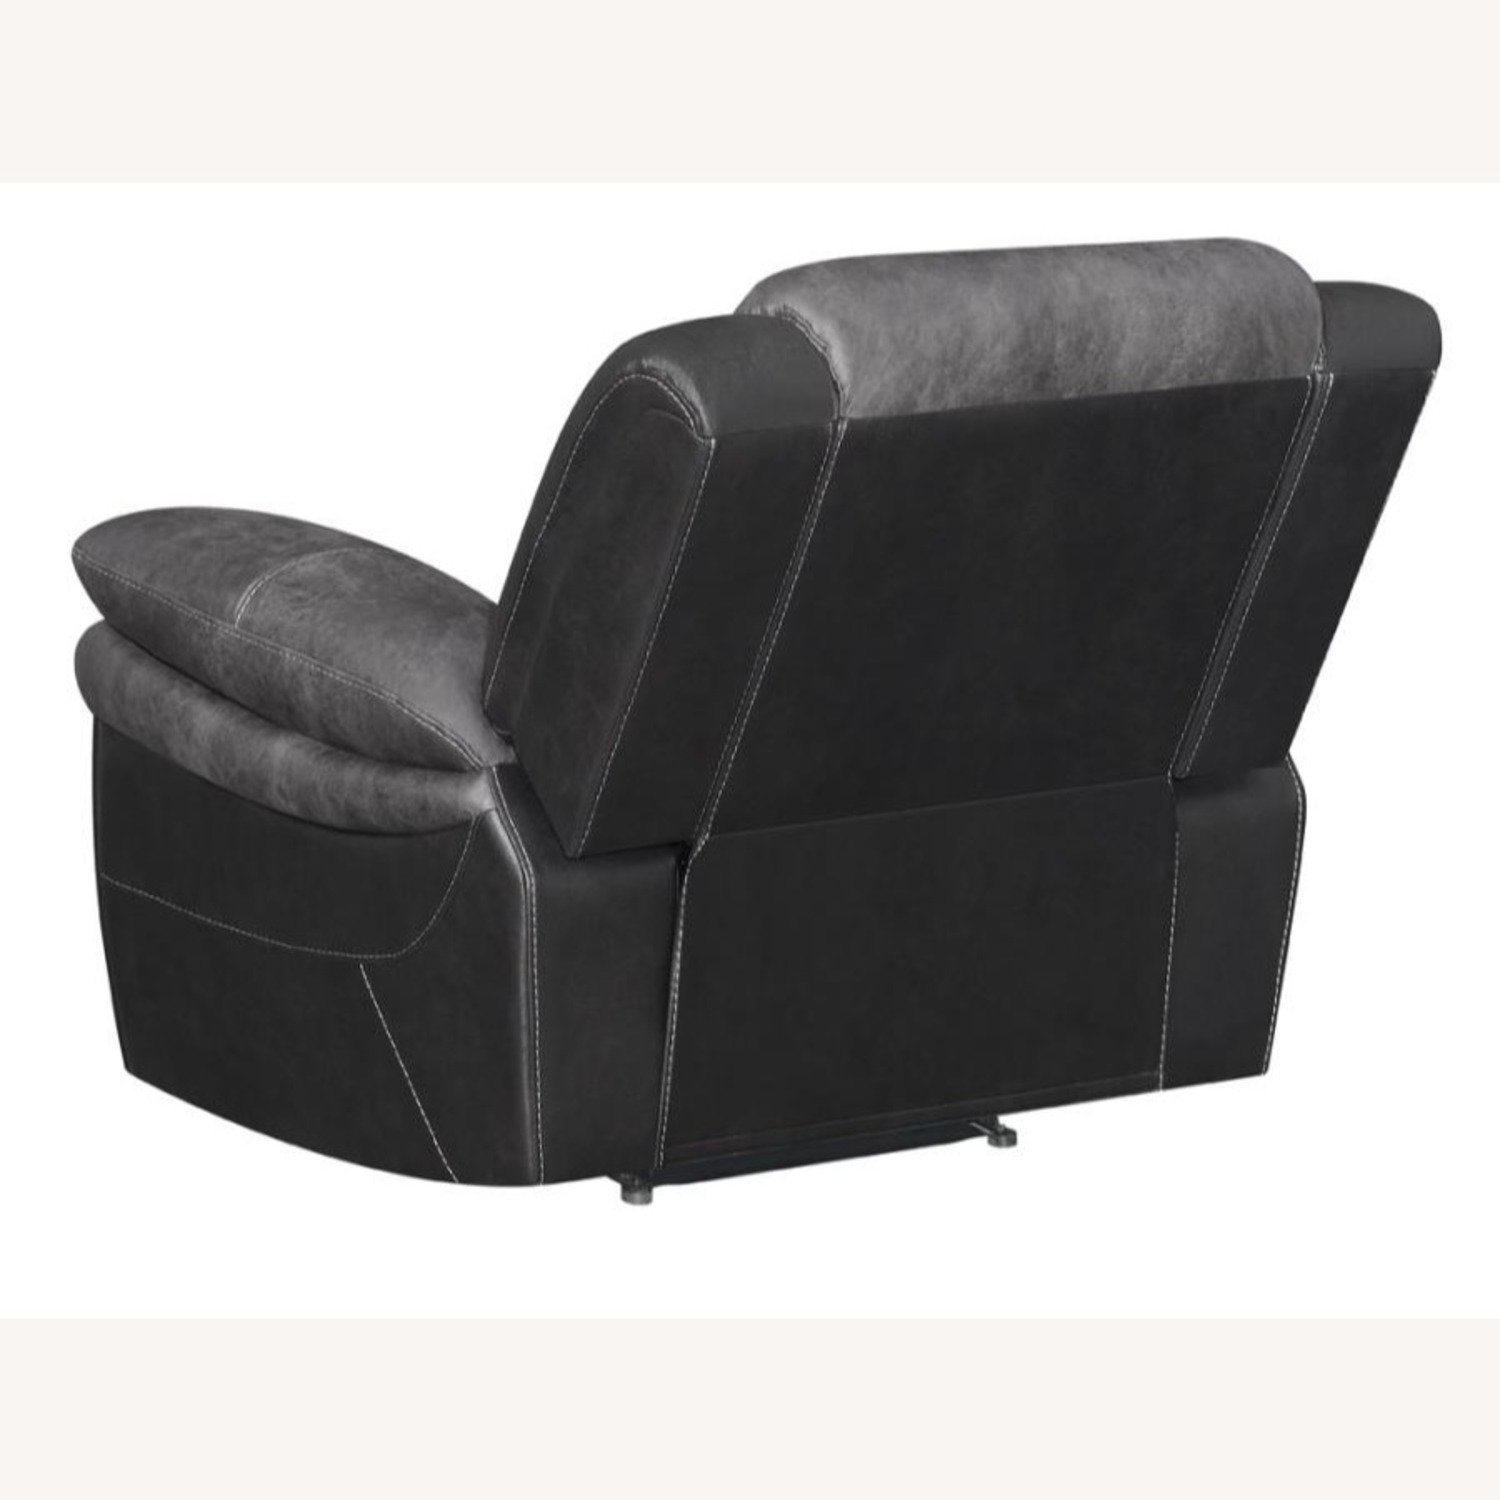 Recliner In Two-Tone Charcoal & Black Upholstery - image-3